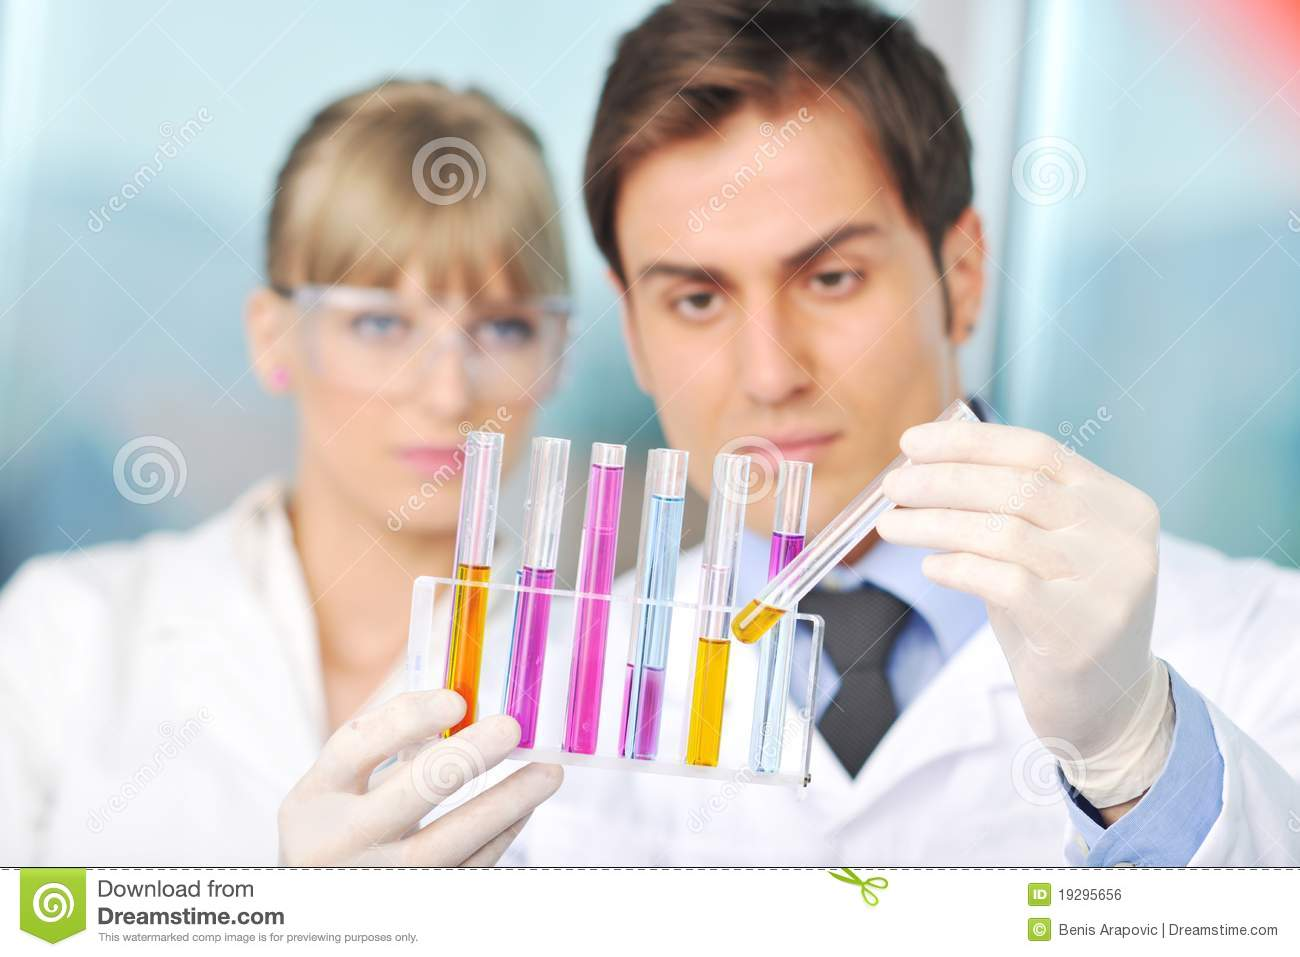 science lab bright royalty biology research youn chemistry couple modern pipette